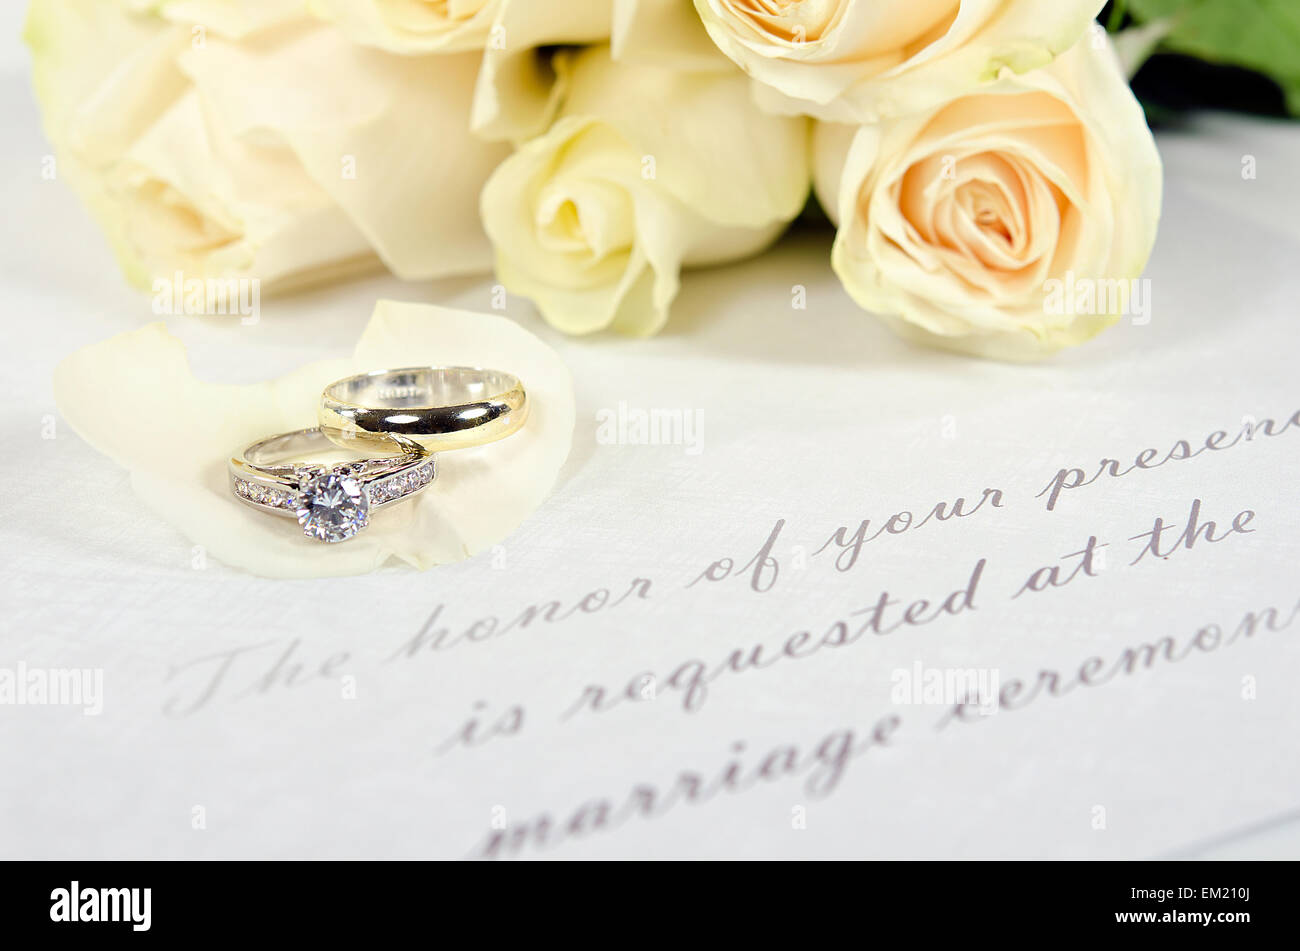 Wedding Rings On White Rose Petal With Formal Invitation: Ivory Roses And Wedding Rings At Reisefeber.org